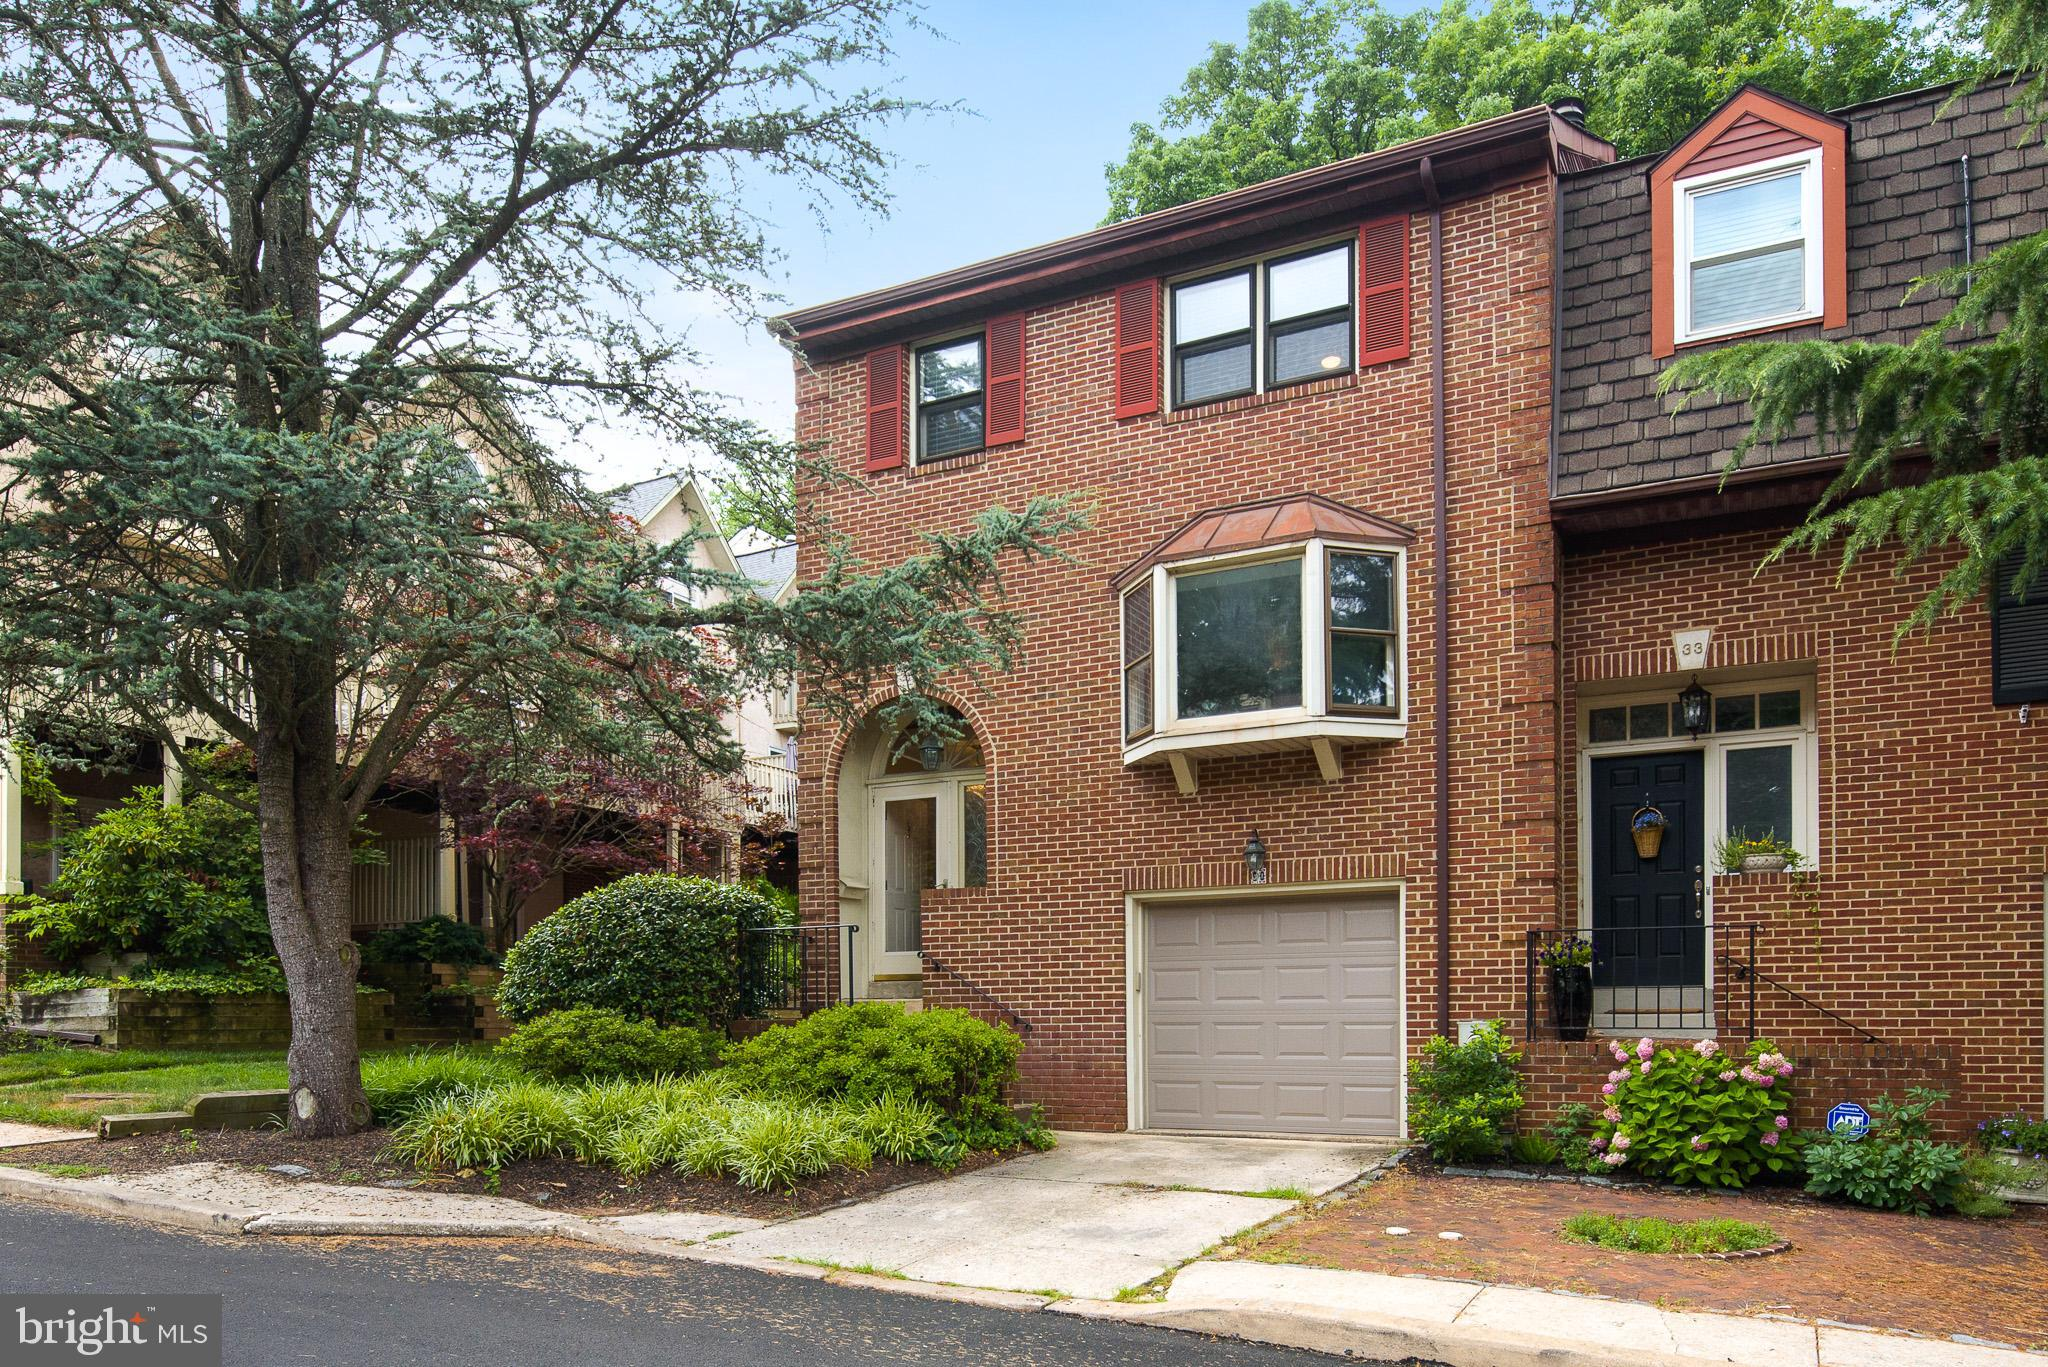 Rare opportunity to purchase an end unit town home at the base of Rockford Park!  3 story, 3 bedroom